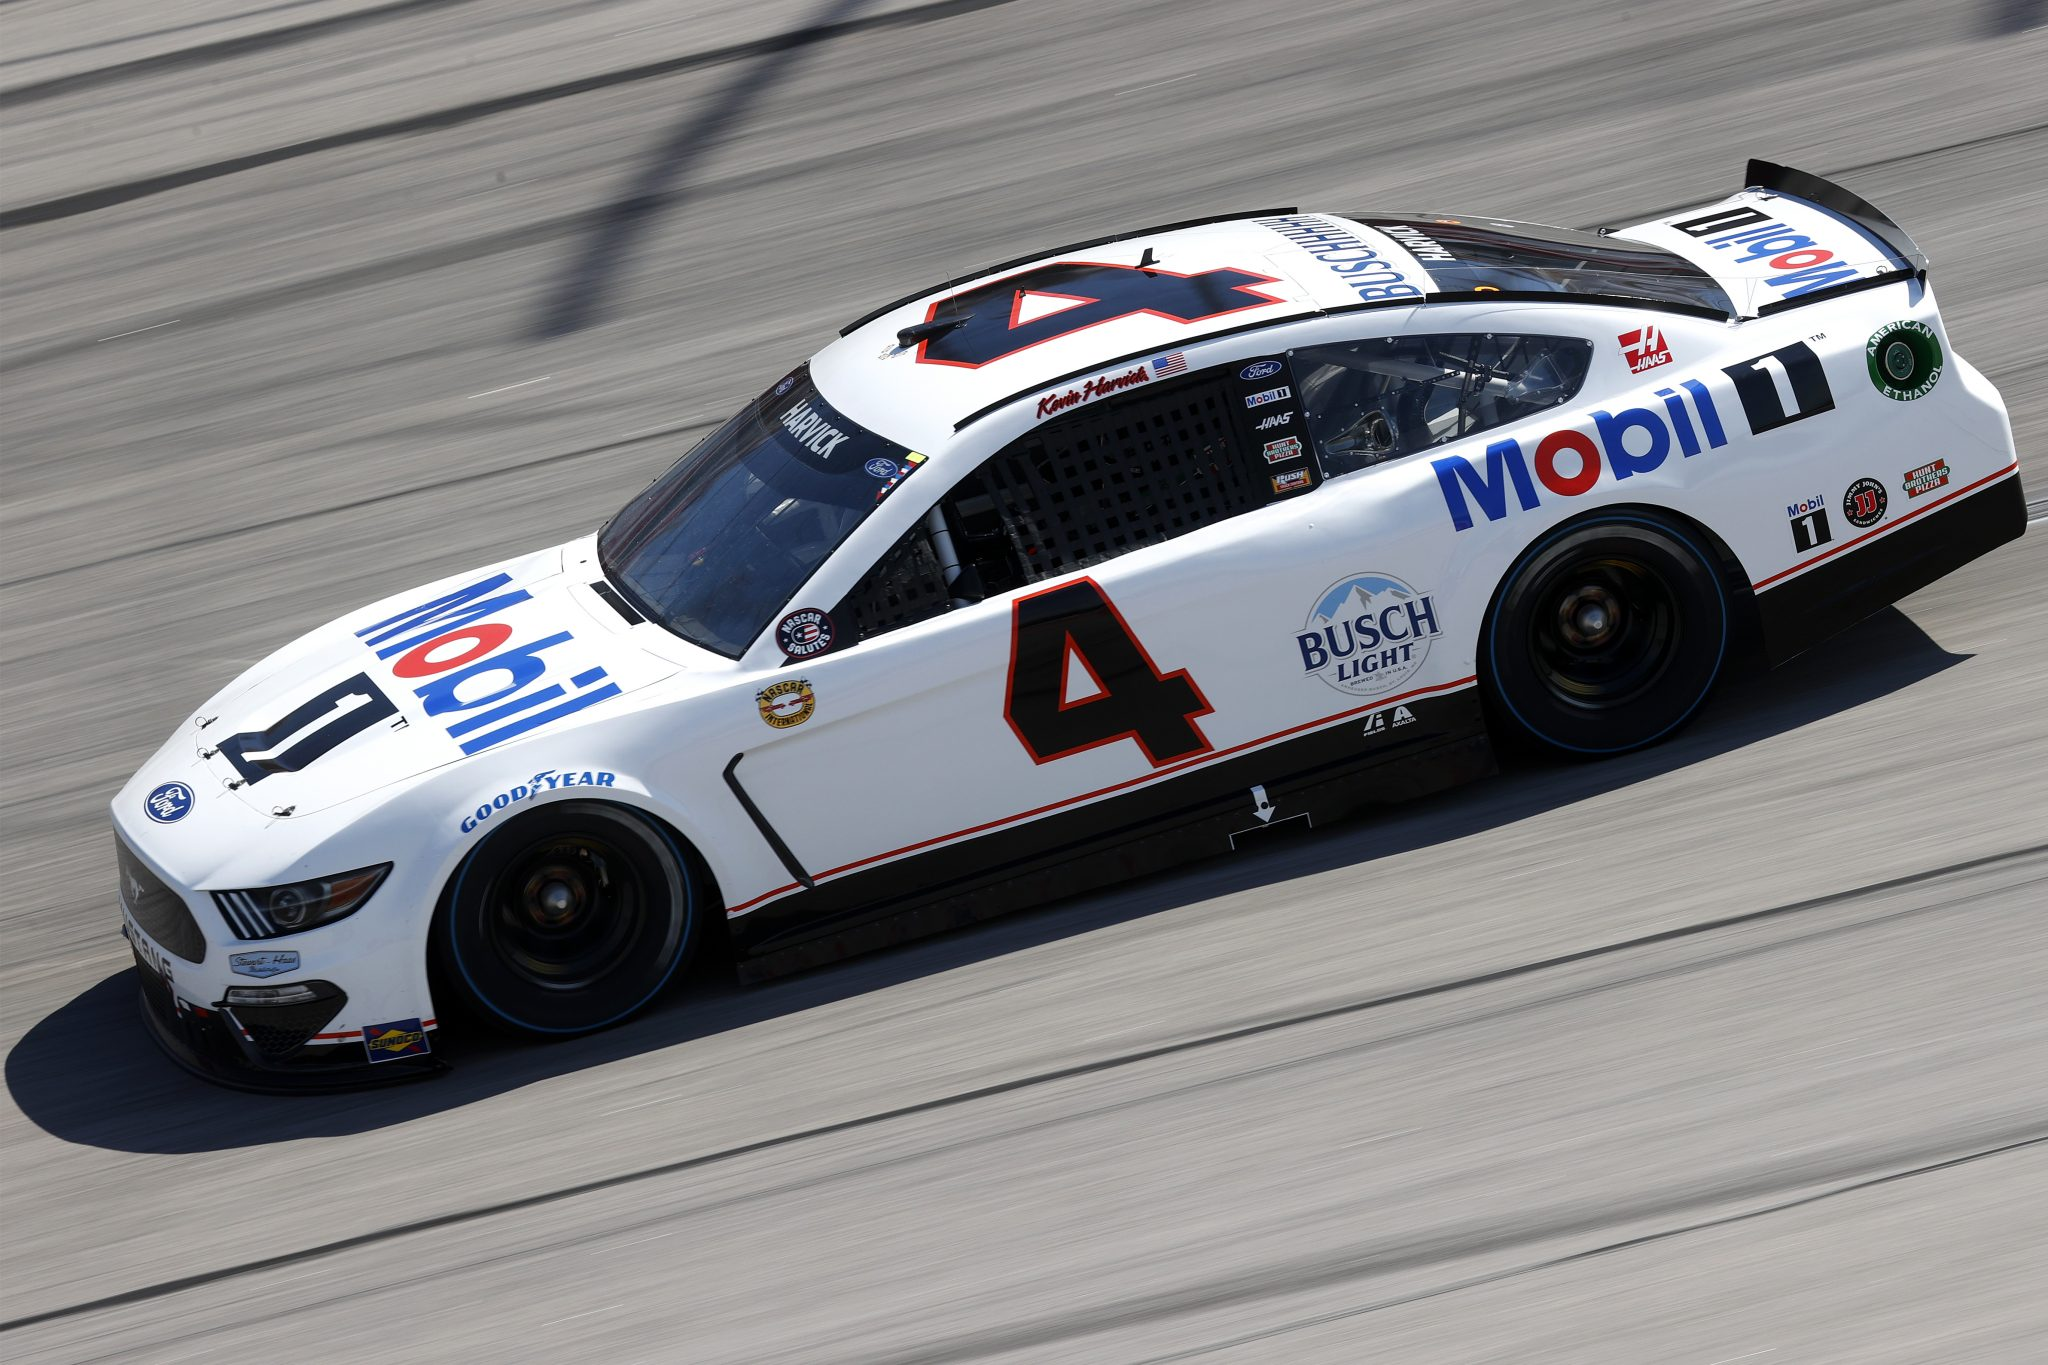 DARLINGTON, SOUTH CAROLINA - MAY 09: Kevin Harvick, driver of the #4 Mobil 1 Throwback Ford, drives during the NASCAR Cup Series Goodyear 400 at Darlington Raceway on May 09, 2021 in Darlington, South Carolina. (Photo by Chris Graythen/Getty Images) | Getty Images